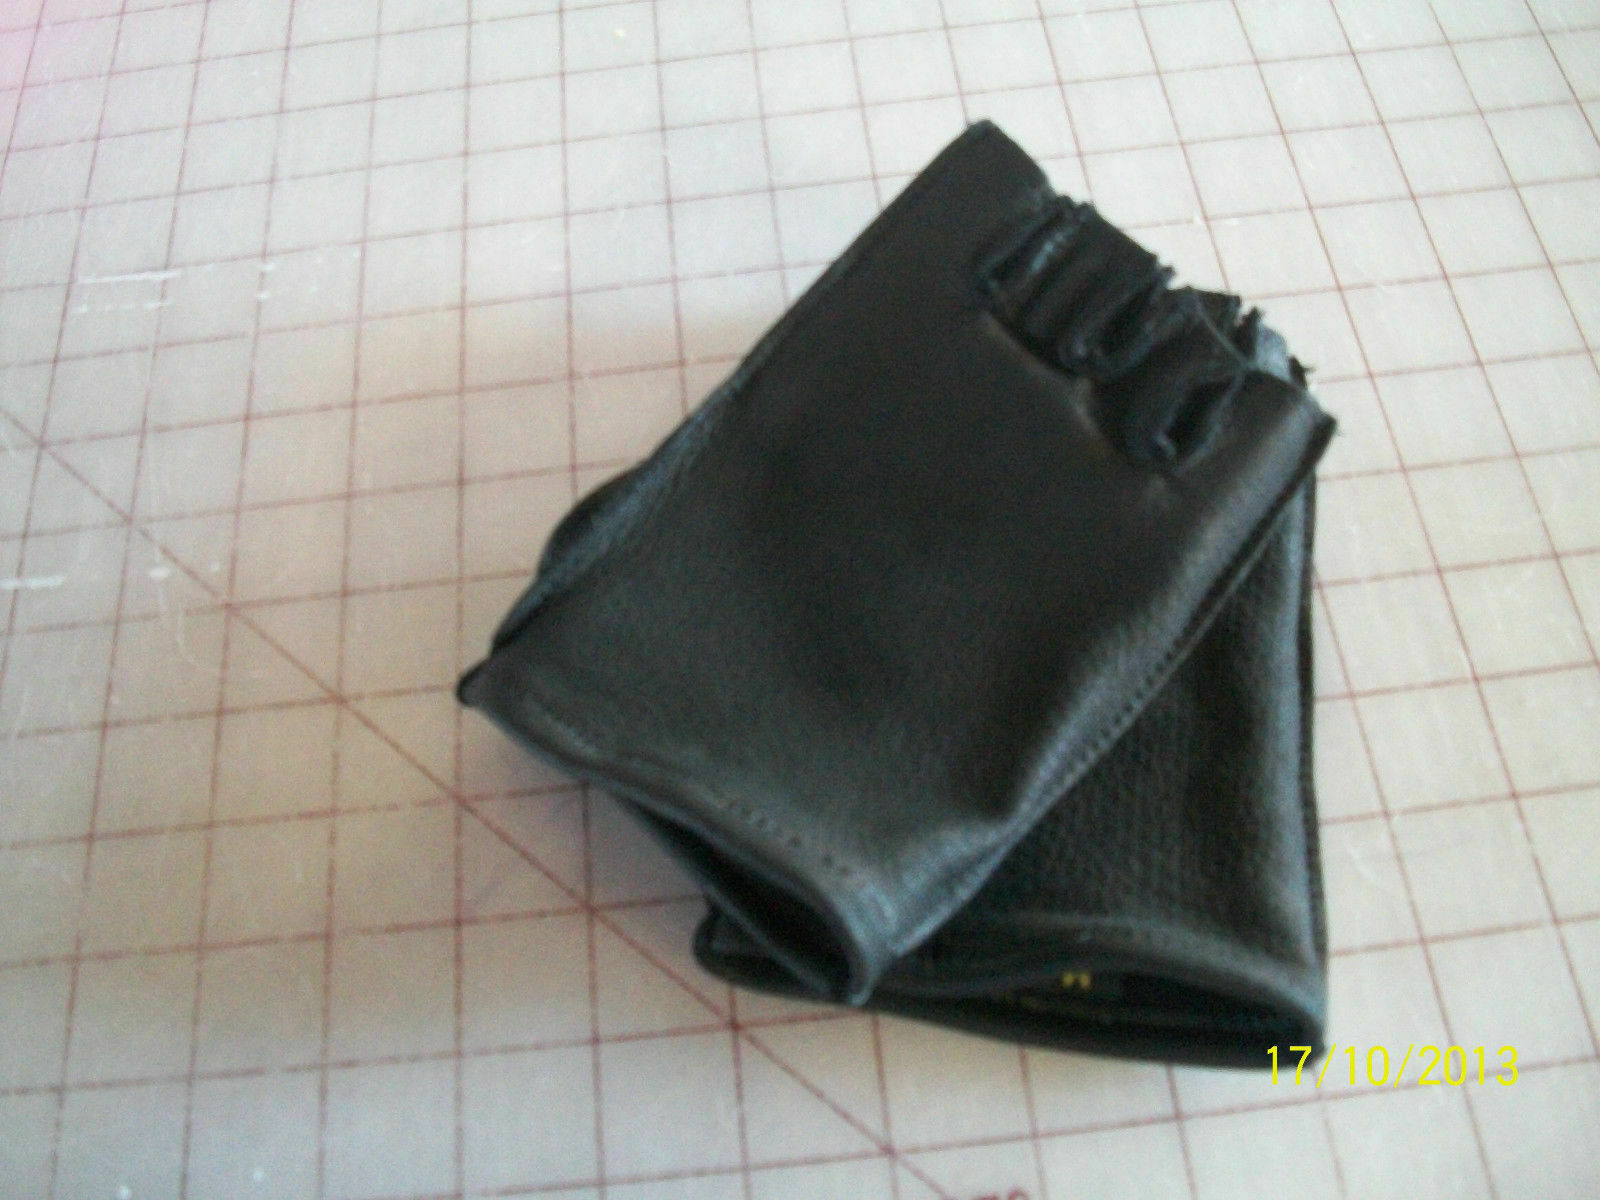 Black Deerskin Leather Fingerless Gloves - Made in the USA